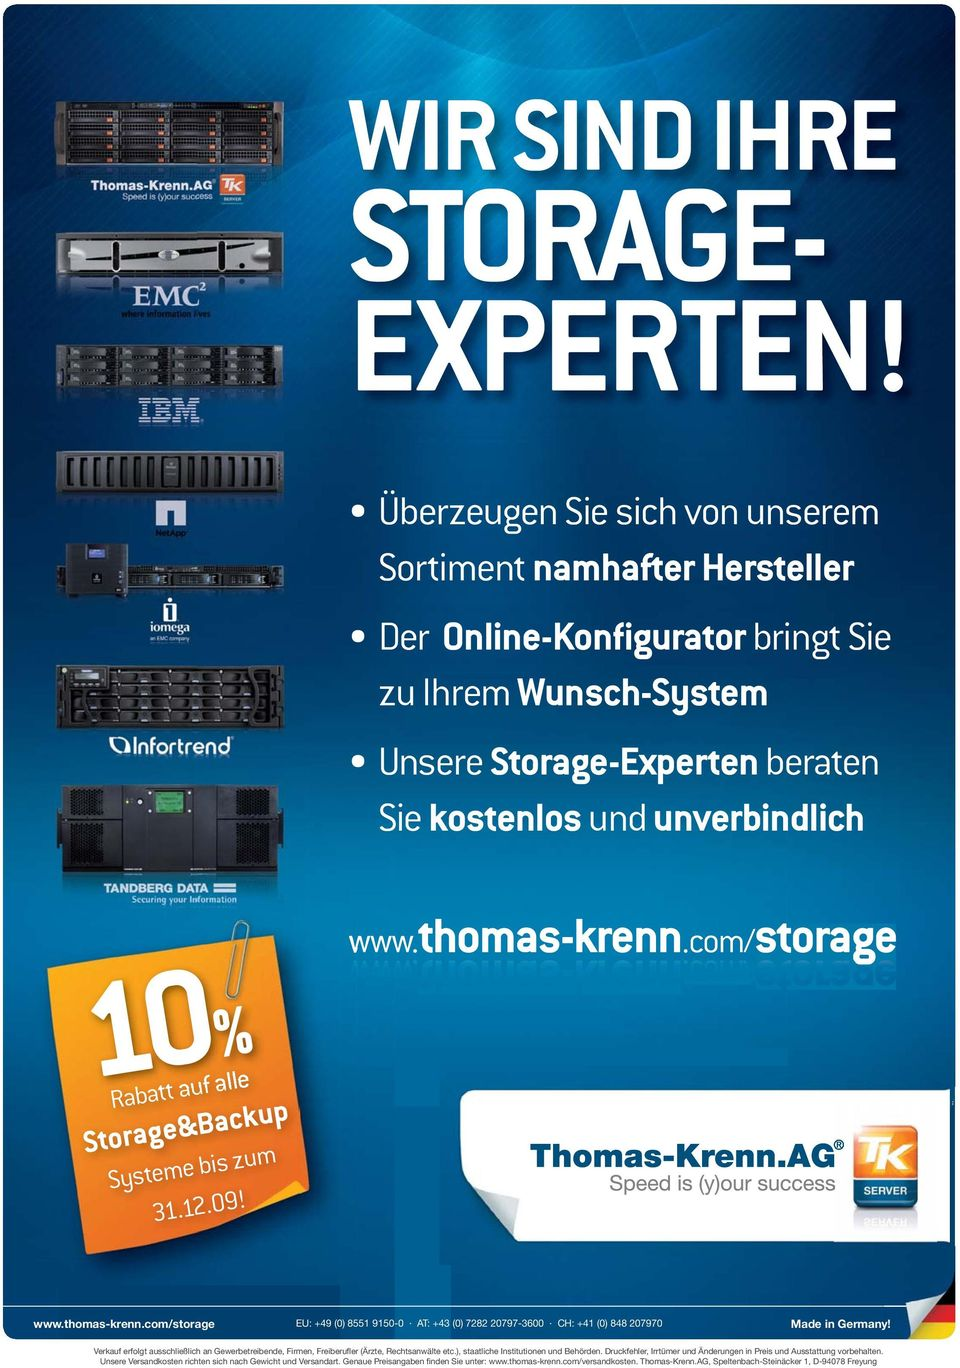 com/storagestorage 10% Rabatt auf alle &Backup Systeme bis zum 31.12.09! www.thomas-krenn.com/storage EU: +49 (0) 8551 9150-0 AT: +43 (0) 7282 20797-3600 CH: +41 (0) 848 207970 Made in Germany!